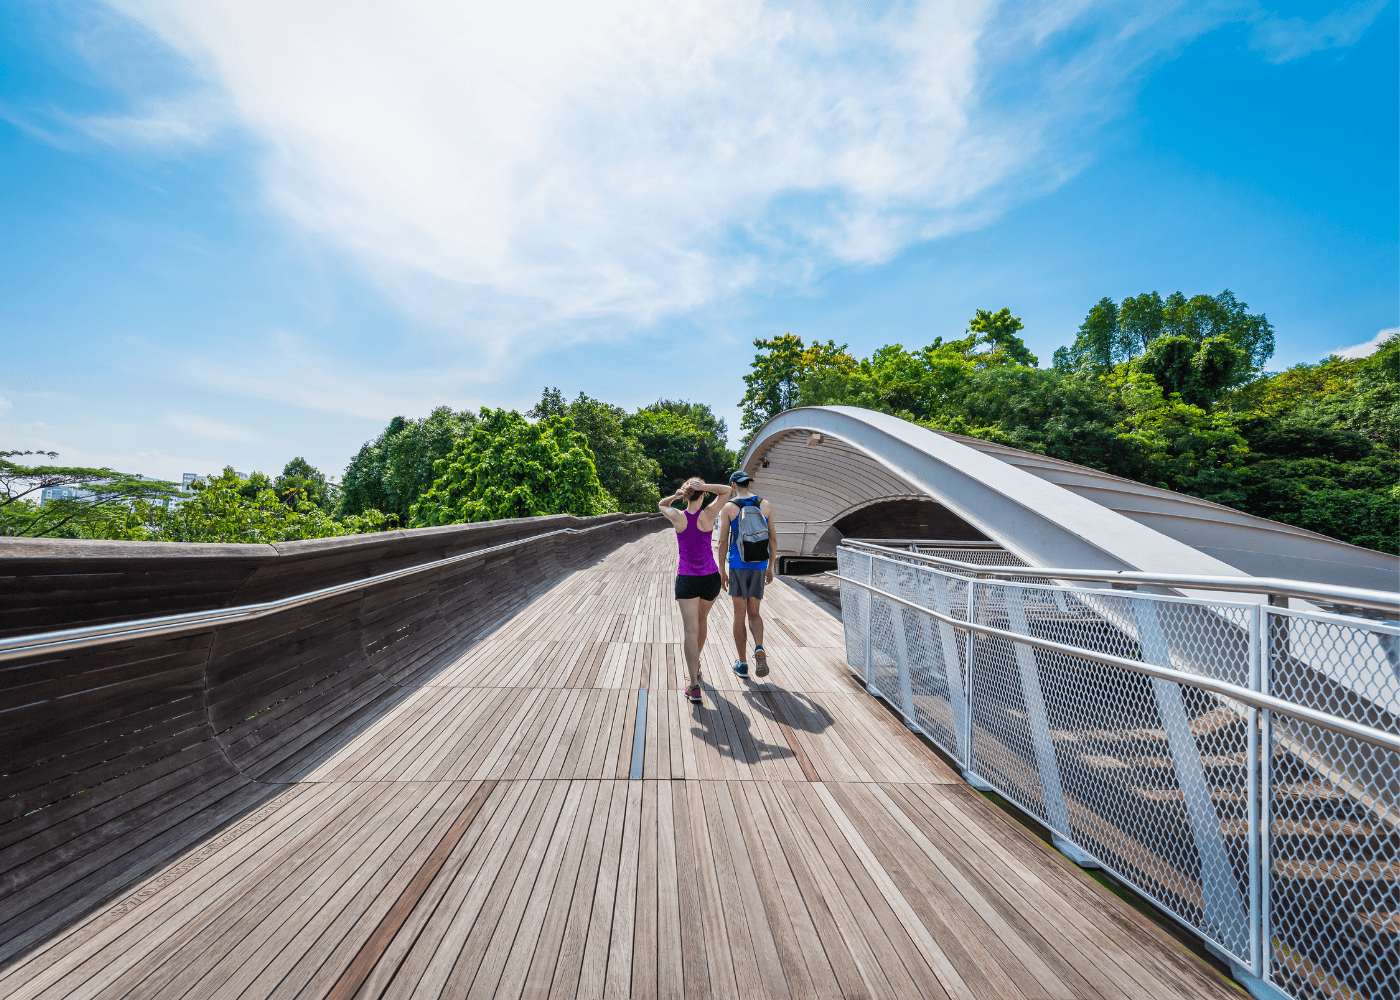 Hiking in Singapore: Henderson waves